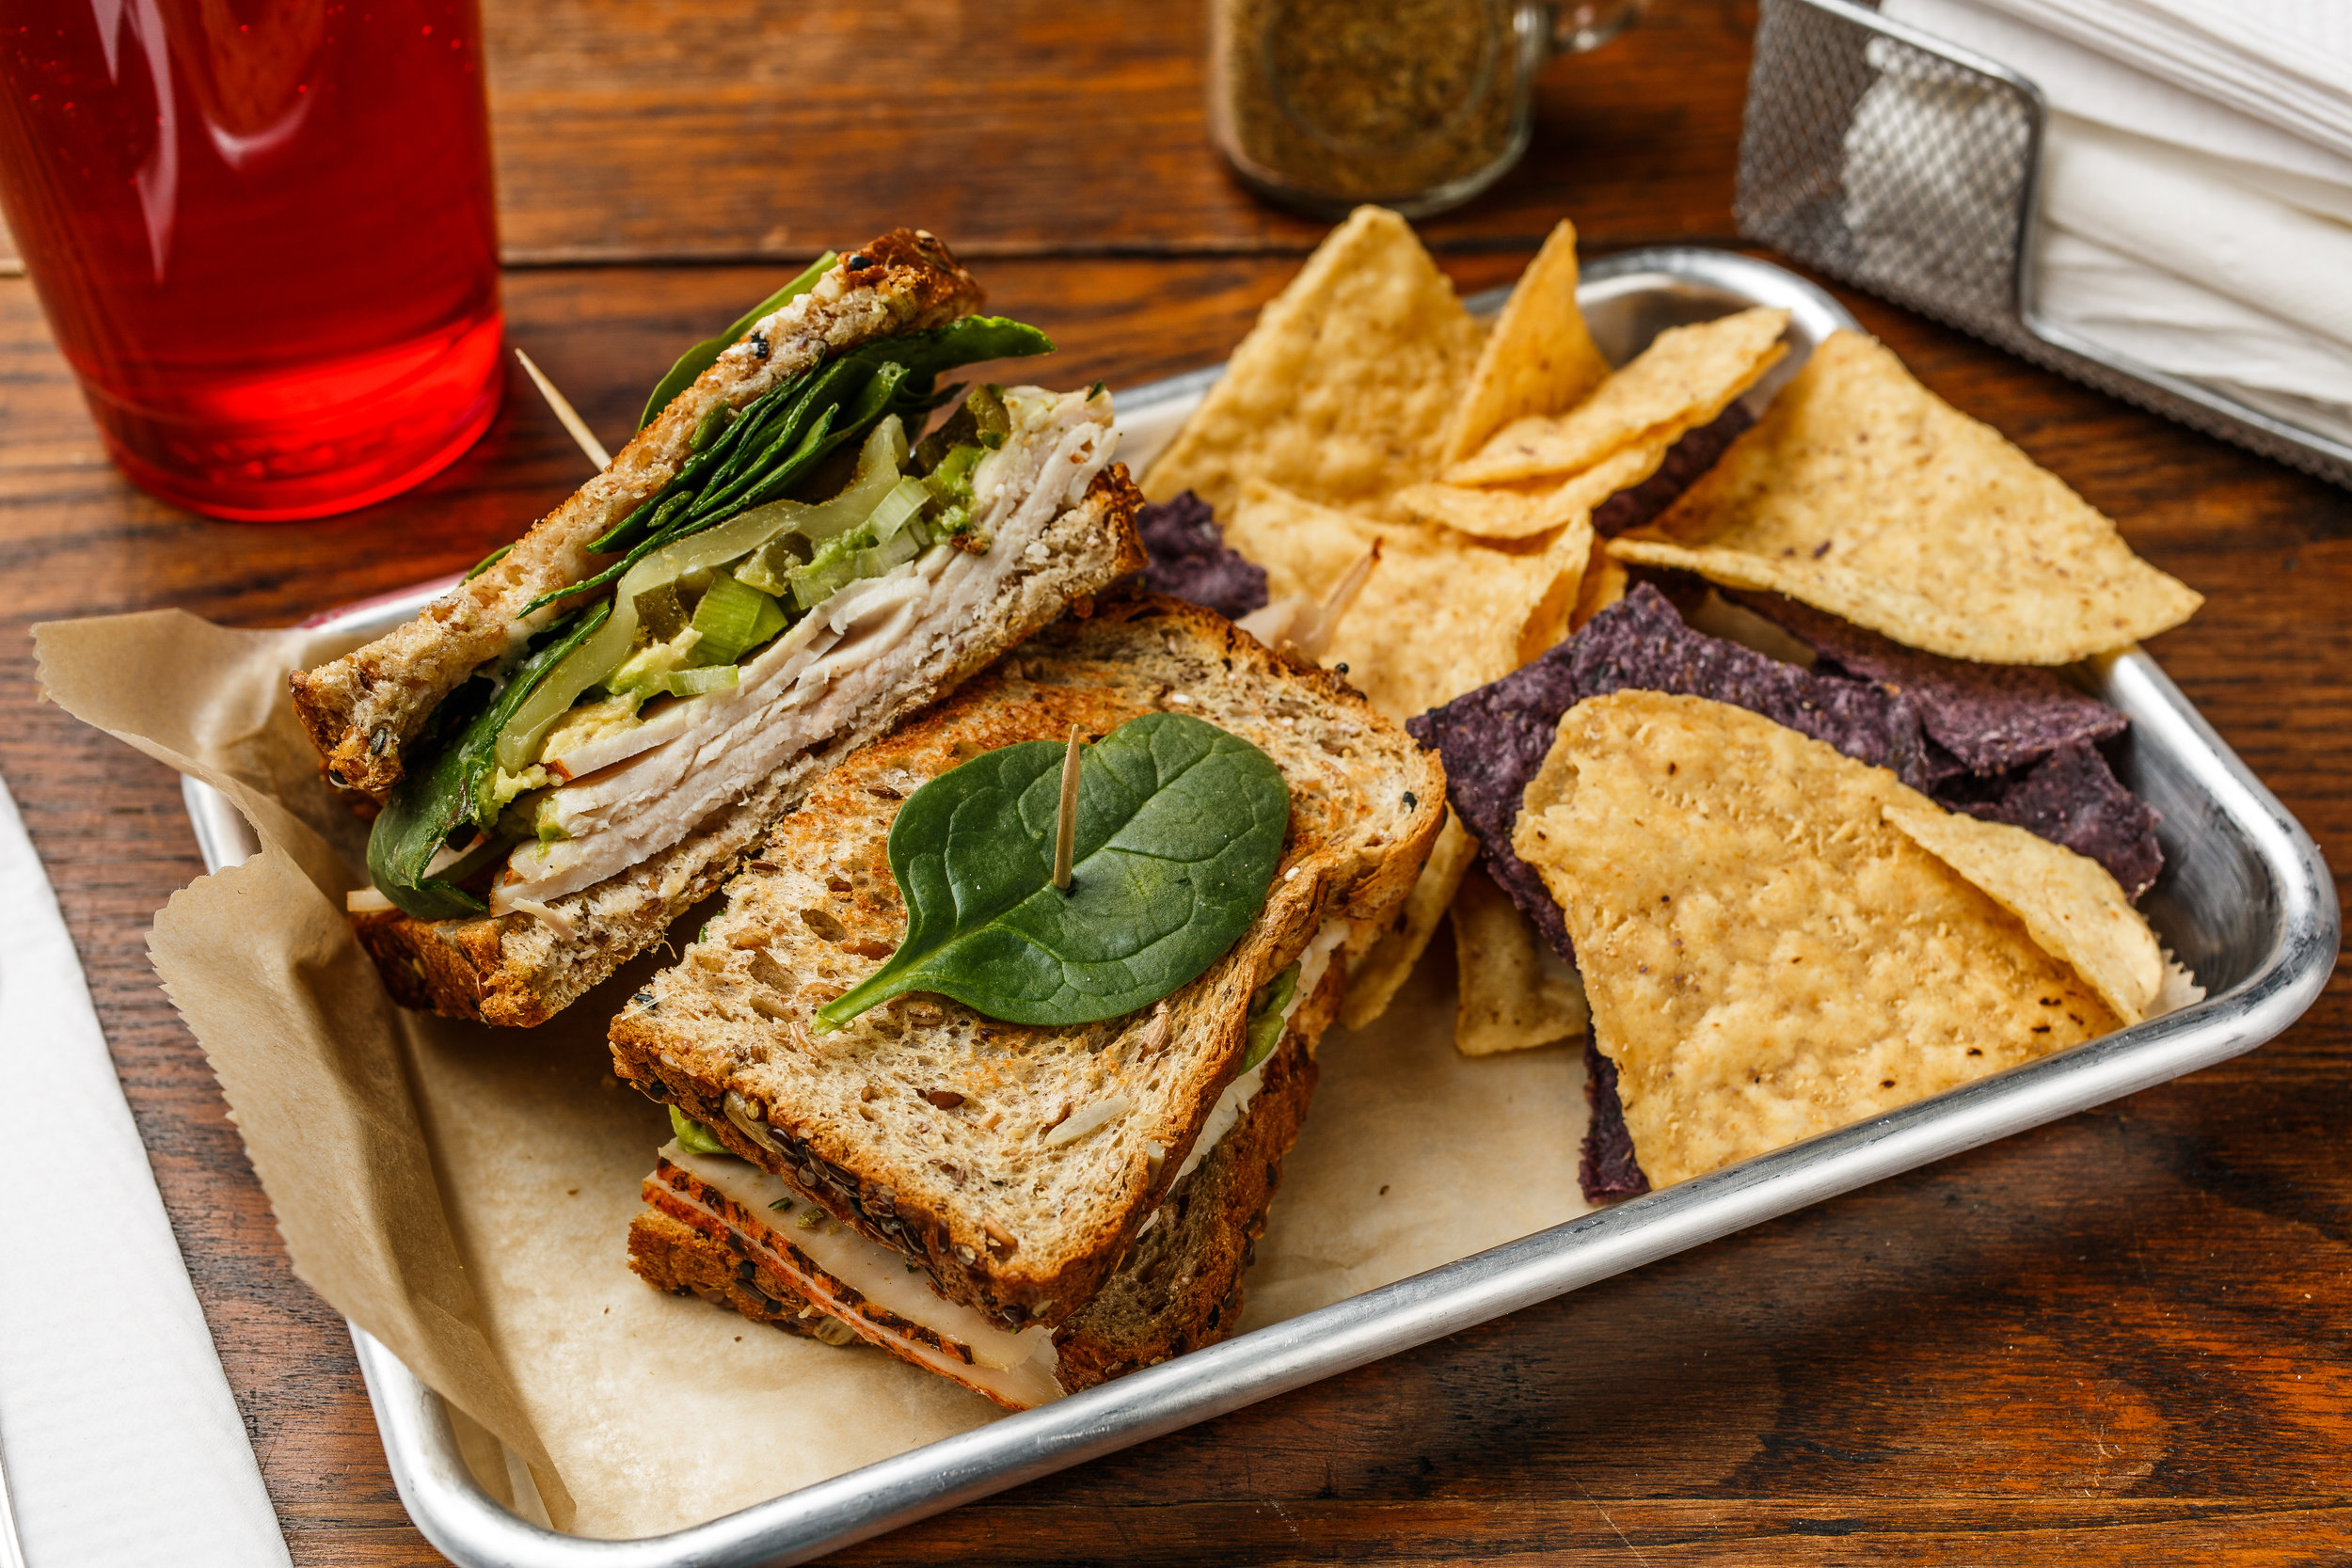 Bruces' Best  Boar's head turkey, jalapeño, avocado, green onions, Monterey Jack cheese, spinach, mayo, and spike seasoning. Made as a wrap, sandwich, or salad. Served with organic tortilla chips  $7.99